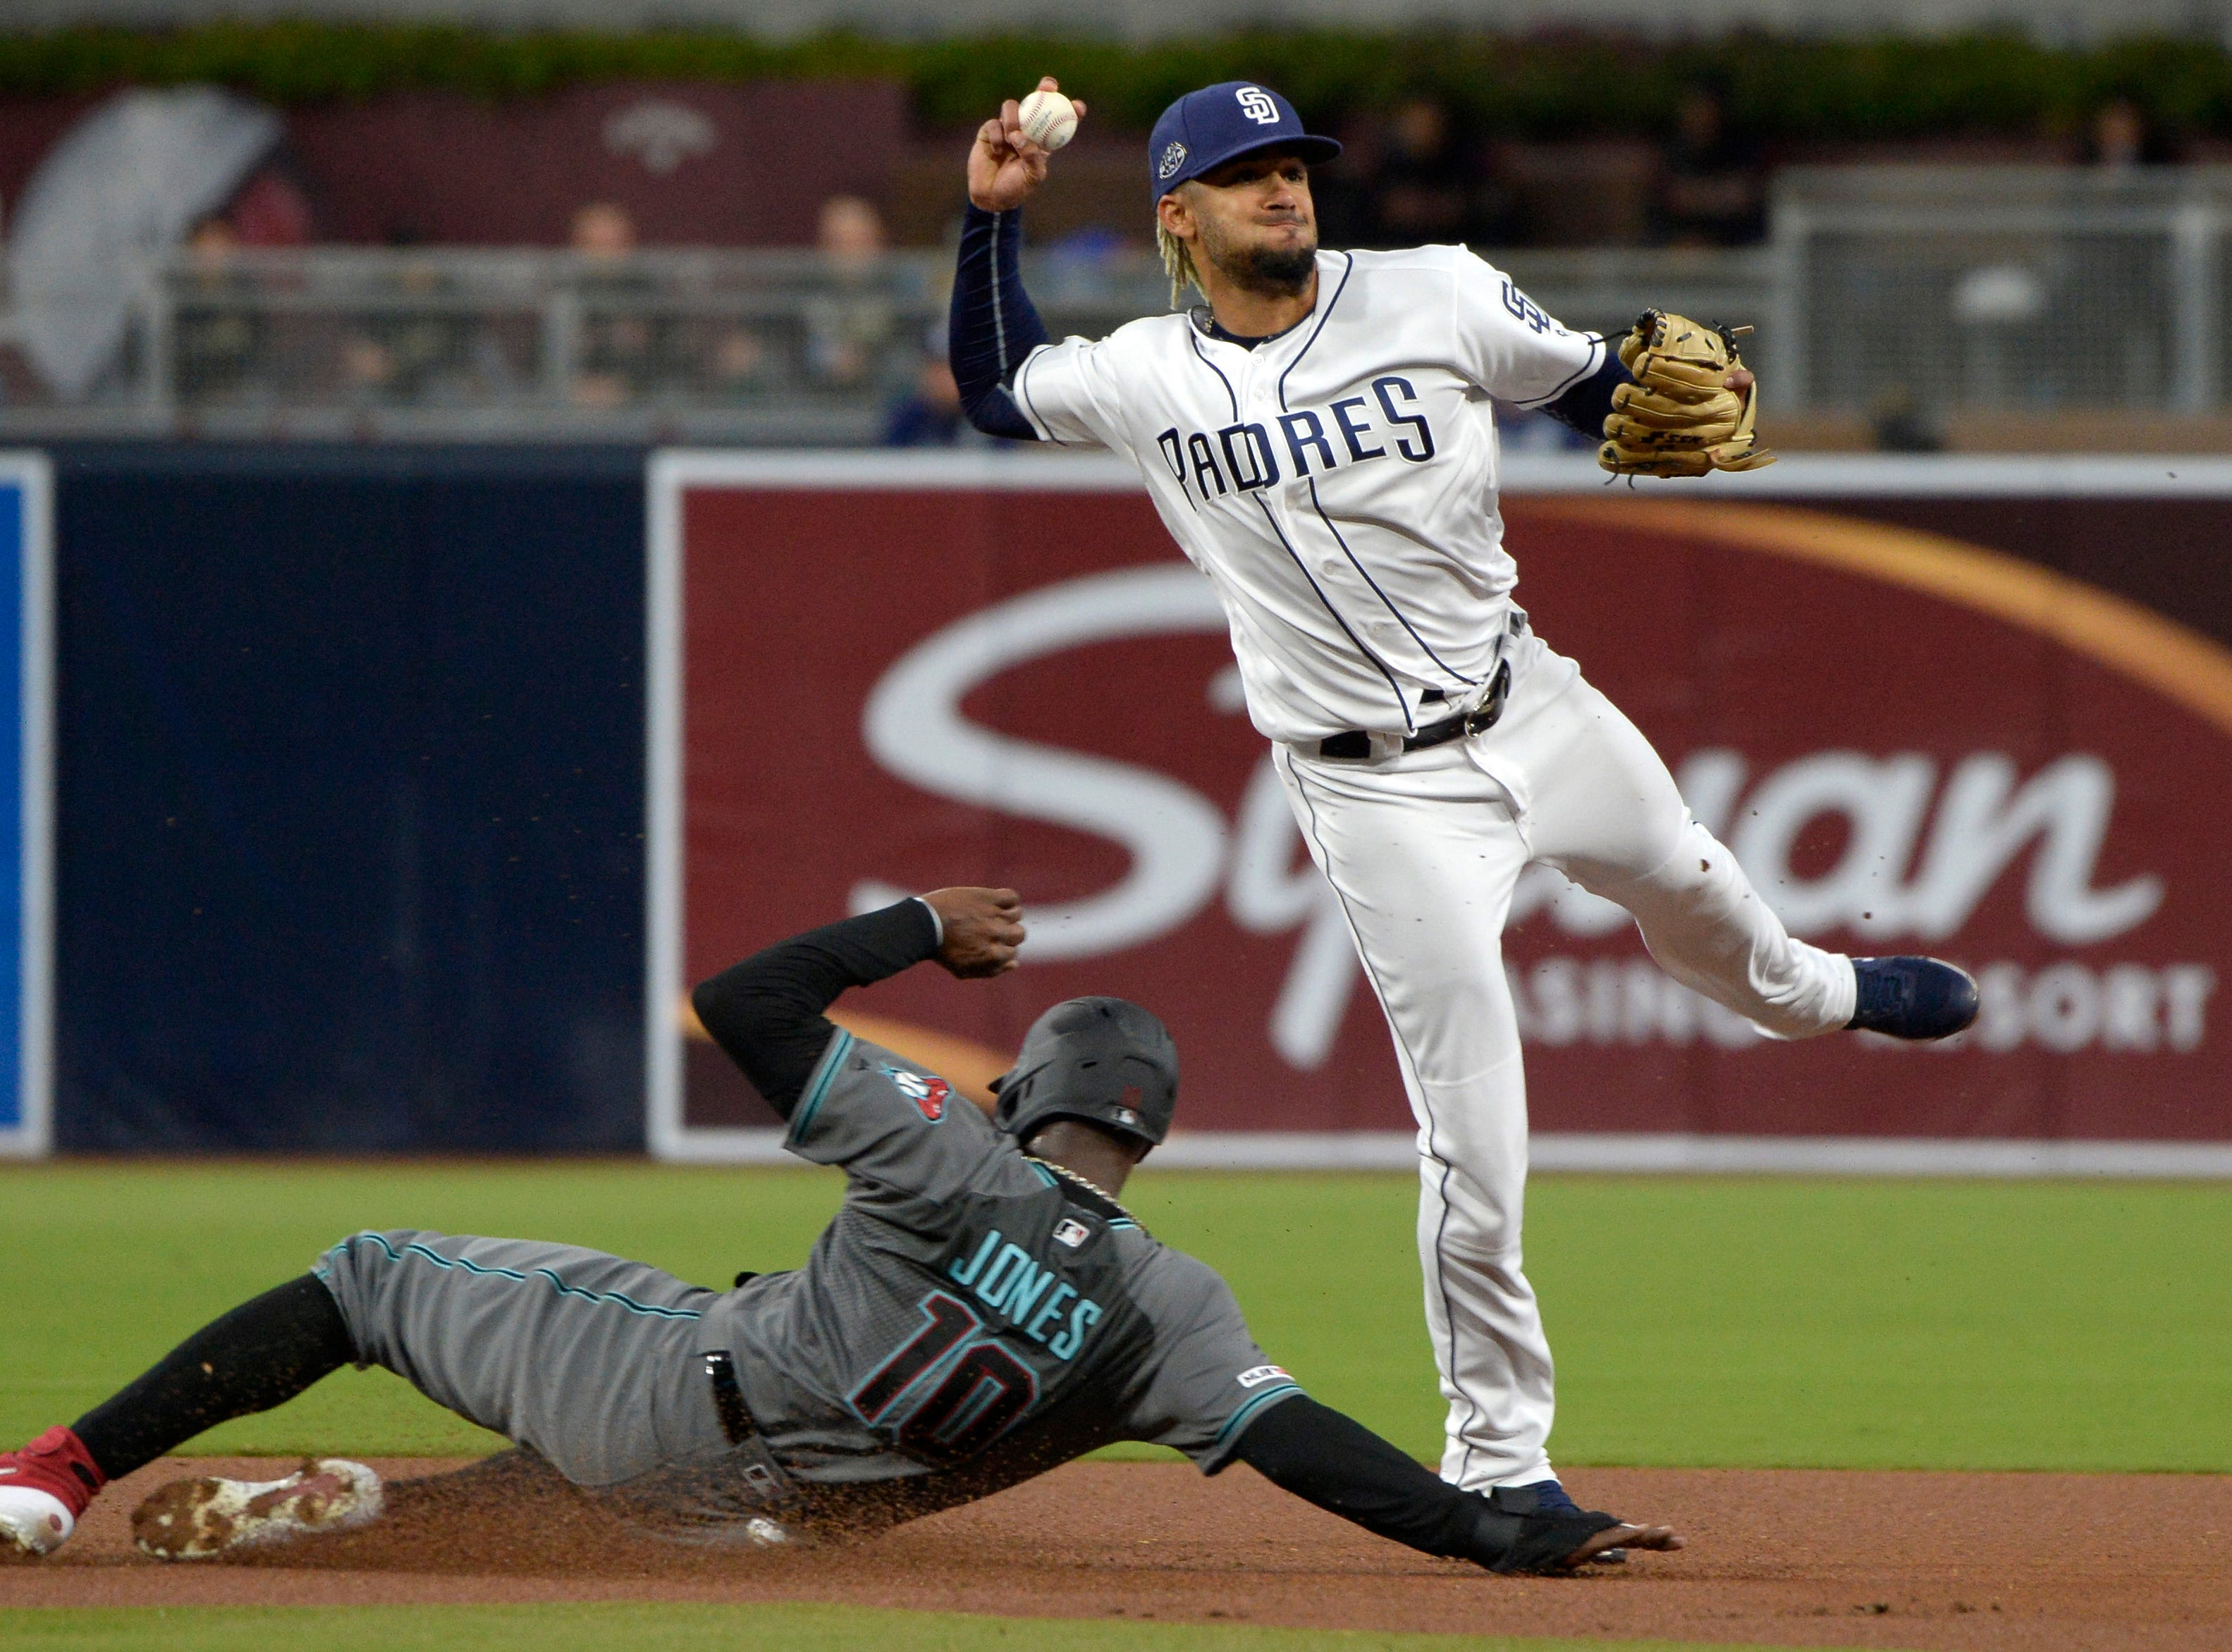 Apr 2, 2019; San Diego, CA, USA; San Diego Padres shortstop Fernando Tatis Jr. (23) throws to first base after forcing out Arizona Diamondbacks right fielder Adam Jones (10) during the first inning at Petco Park. Mandatory Credit: Jake Roth-USA TODAY Sports